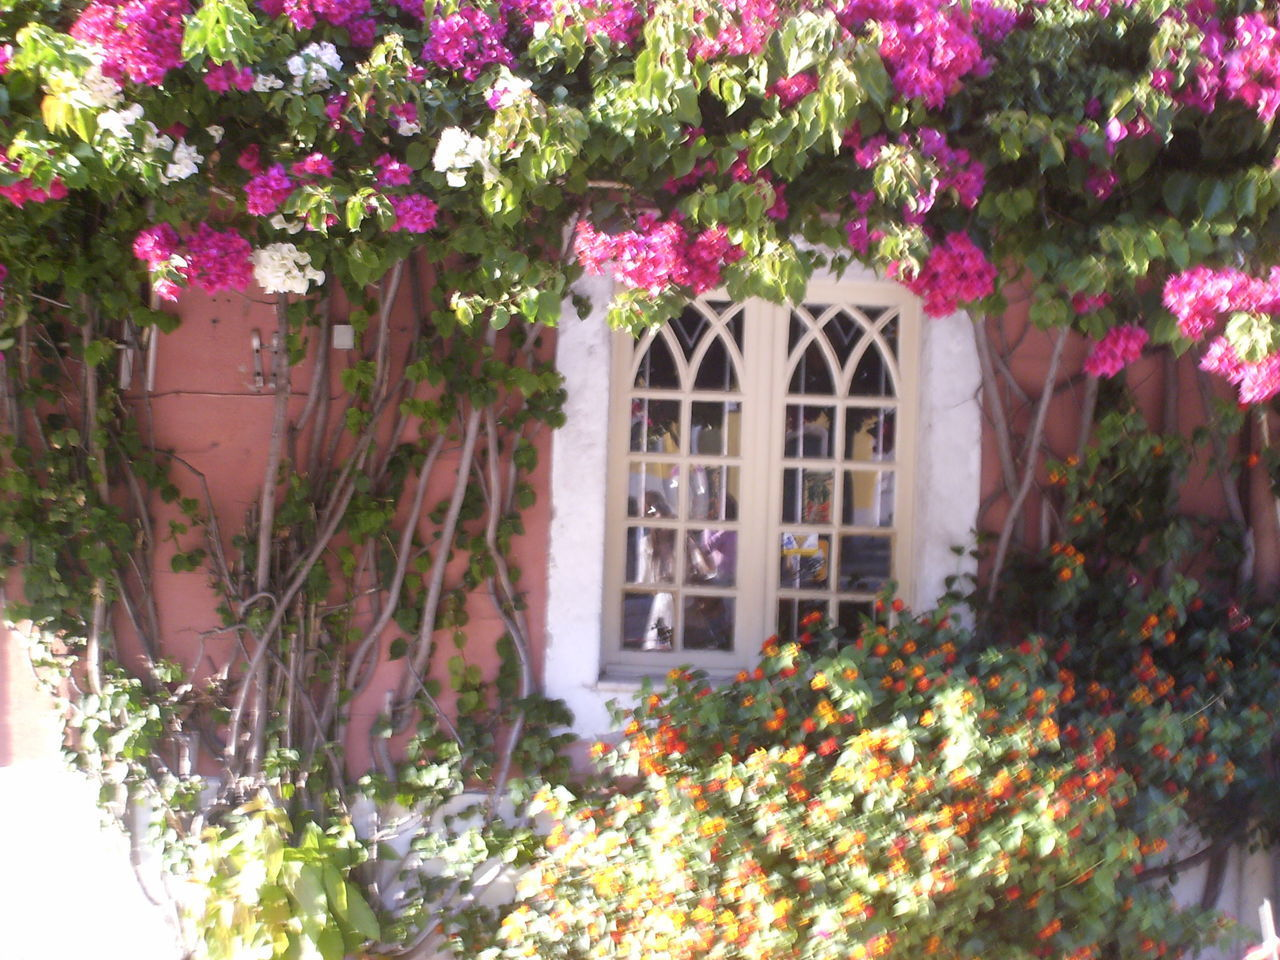 Architecture Beauty In Nature Building Exterior Built Structure Day Flower Flower Head Flowers Arround The Window Flowers In Lisbon Fragility Freshness Growth House Leaf Nature No People Outdoors Pink Color Plant Romantic Flowers Romantic Pictures Romantic Window Various Colors Of Flowers Window Window Box